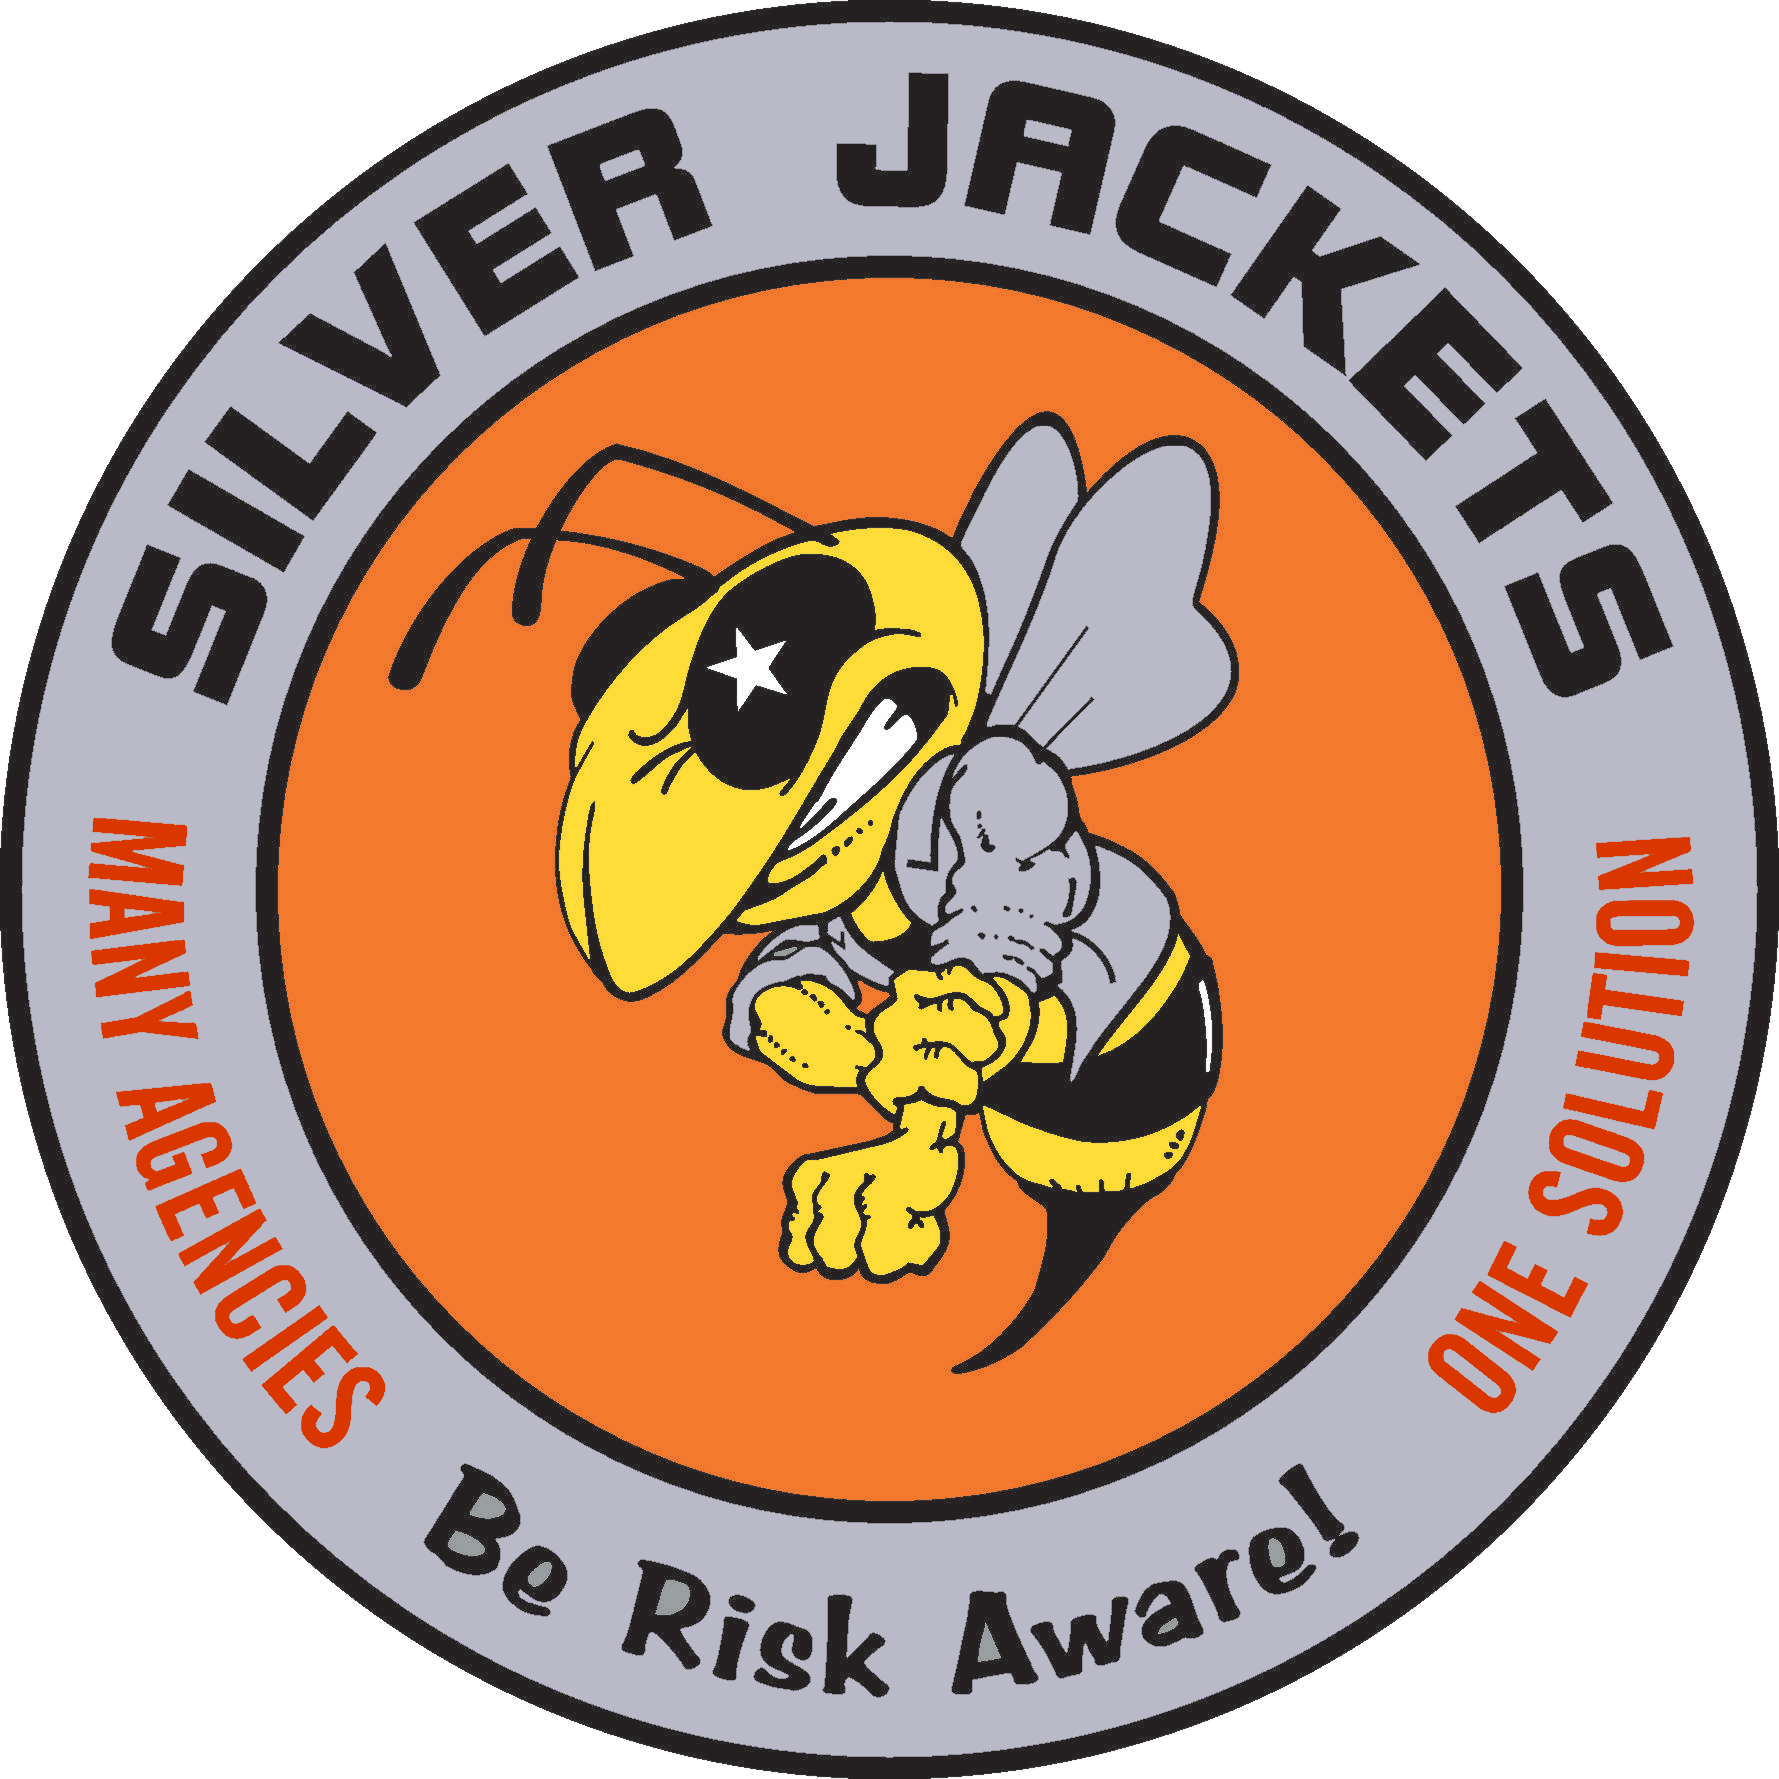 Silver jackets support district. News clipart news story